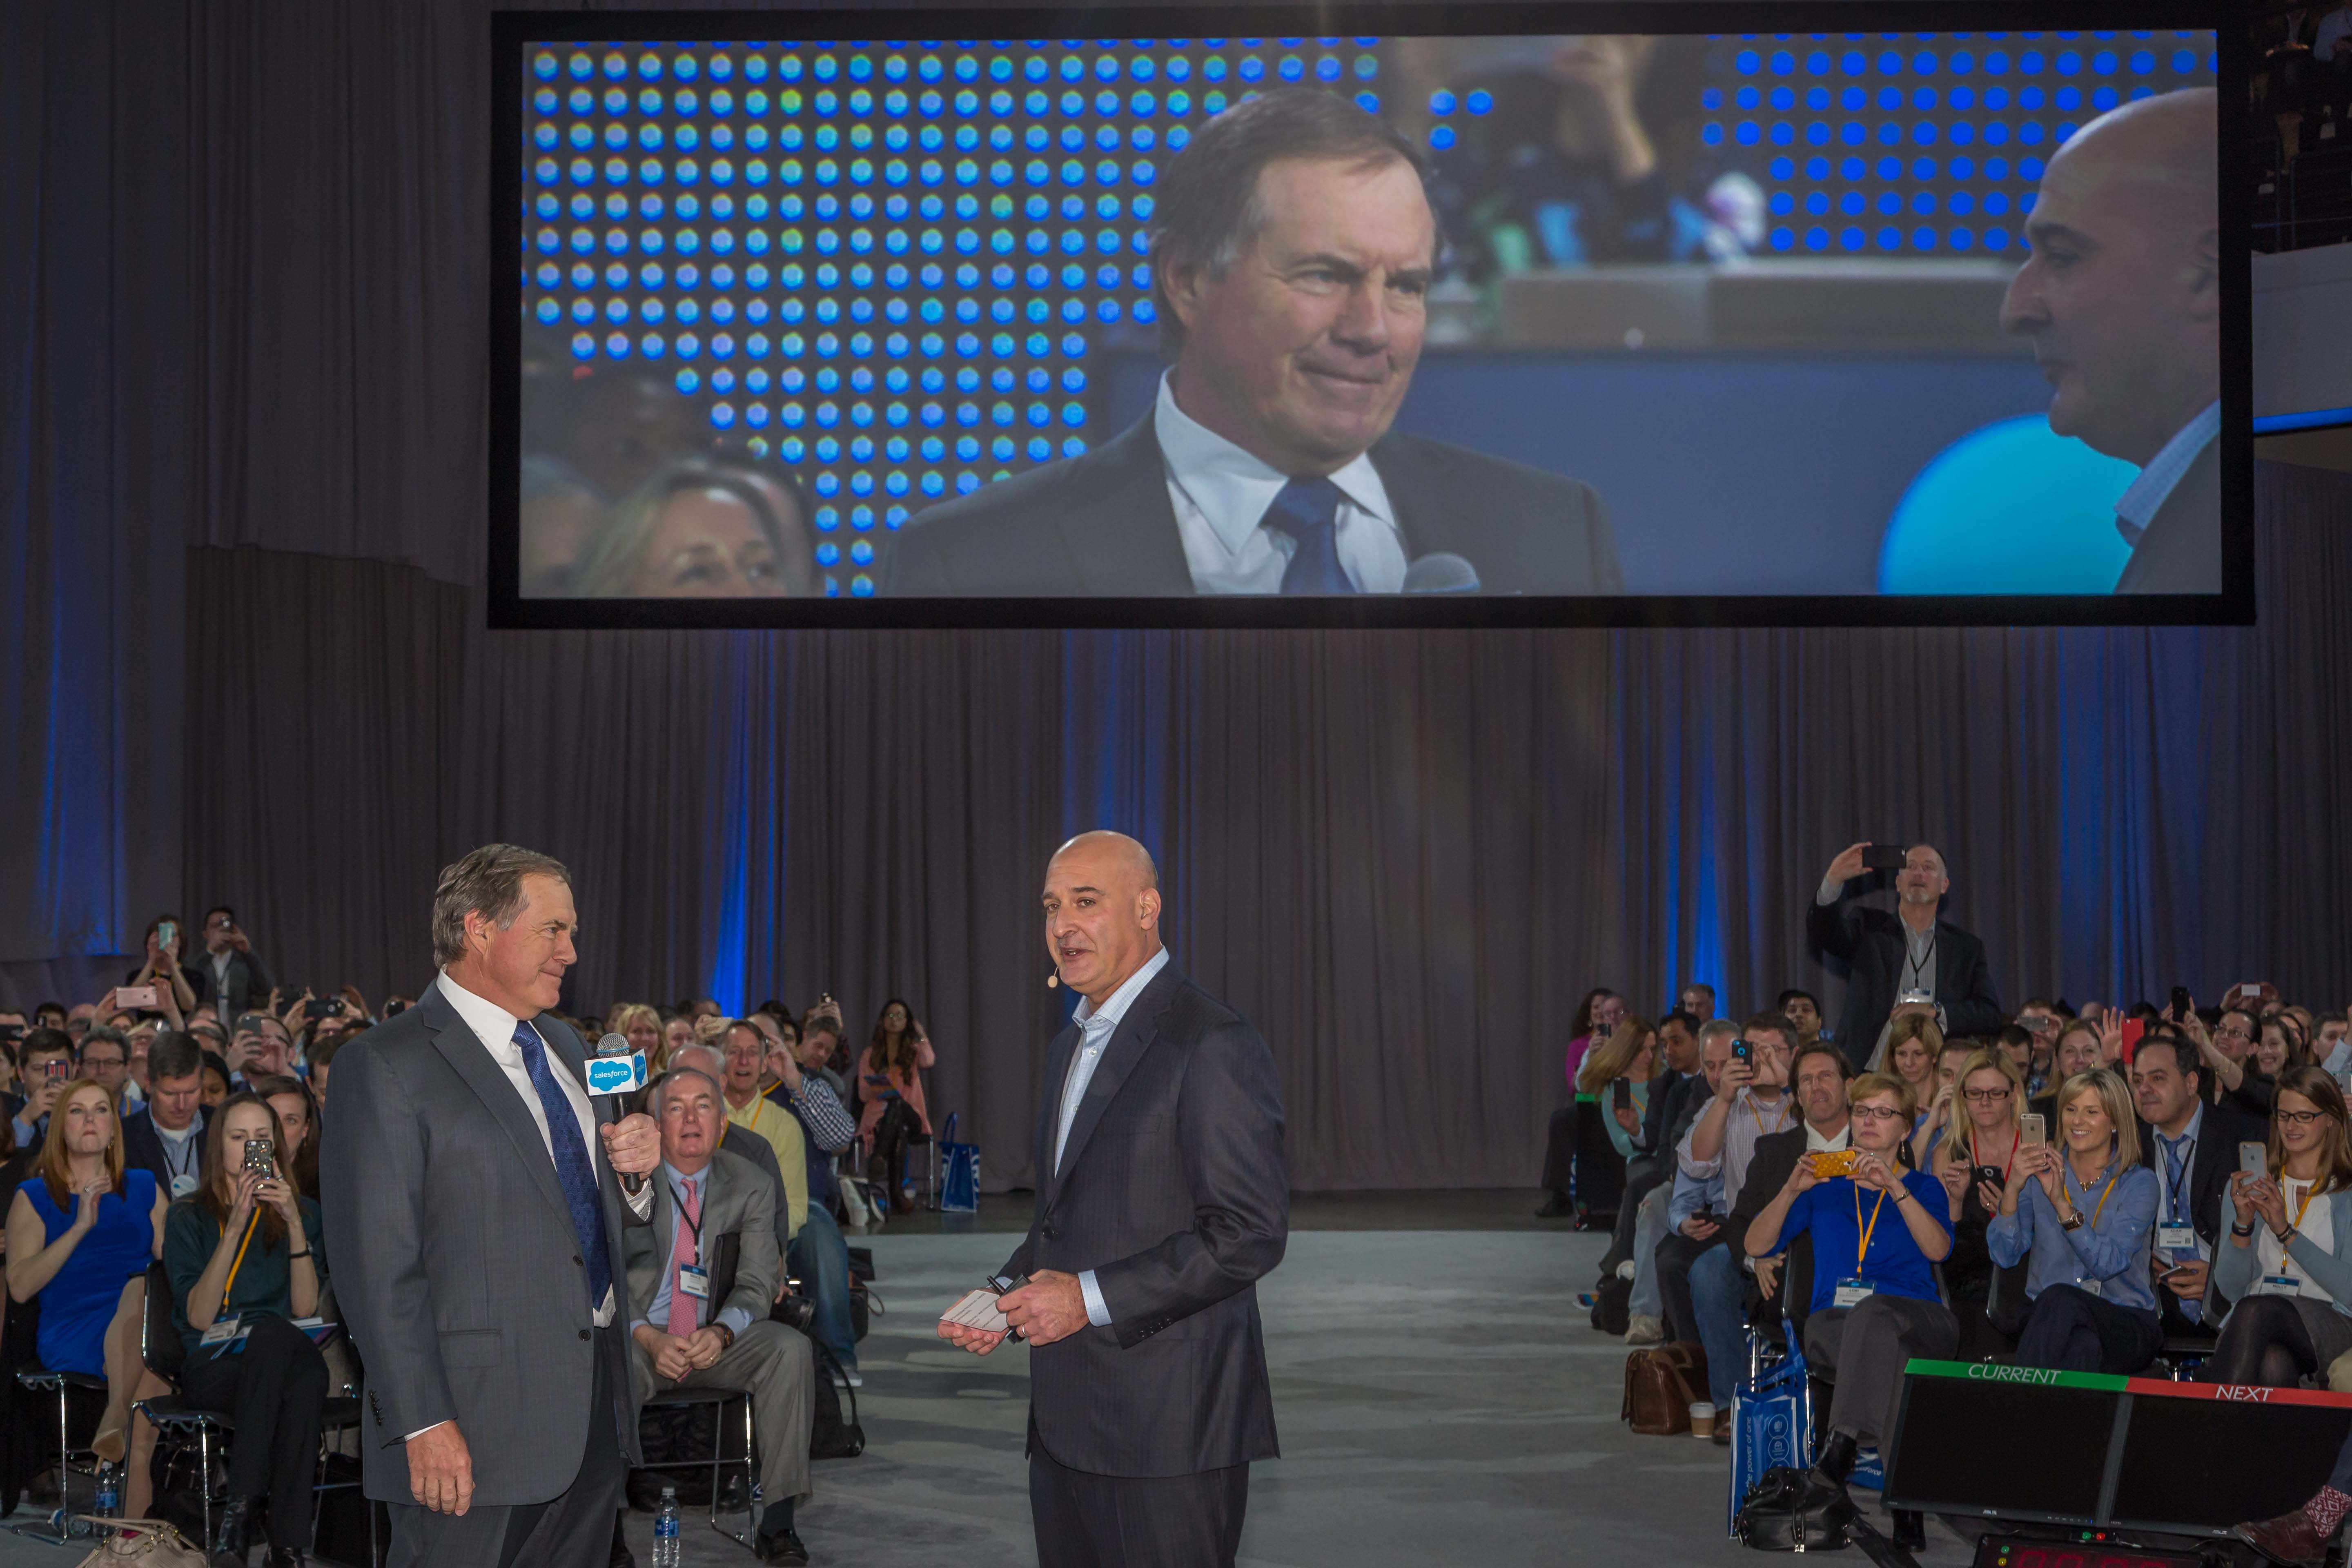 Patriot's coach Bill Belichik and Salesforce president Keith Block at a Boston event.